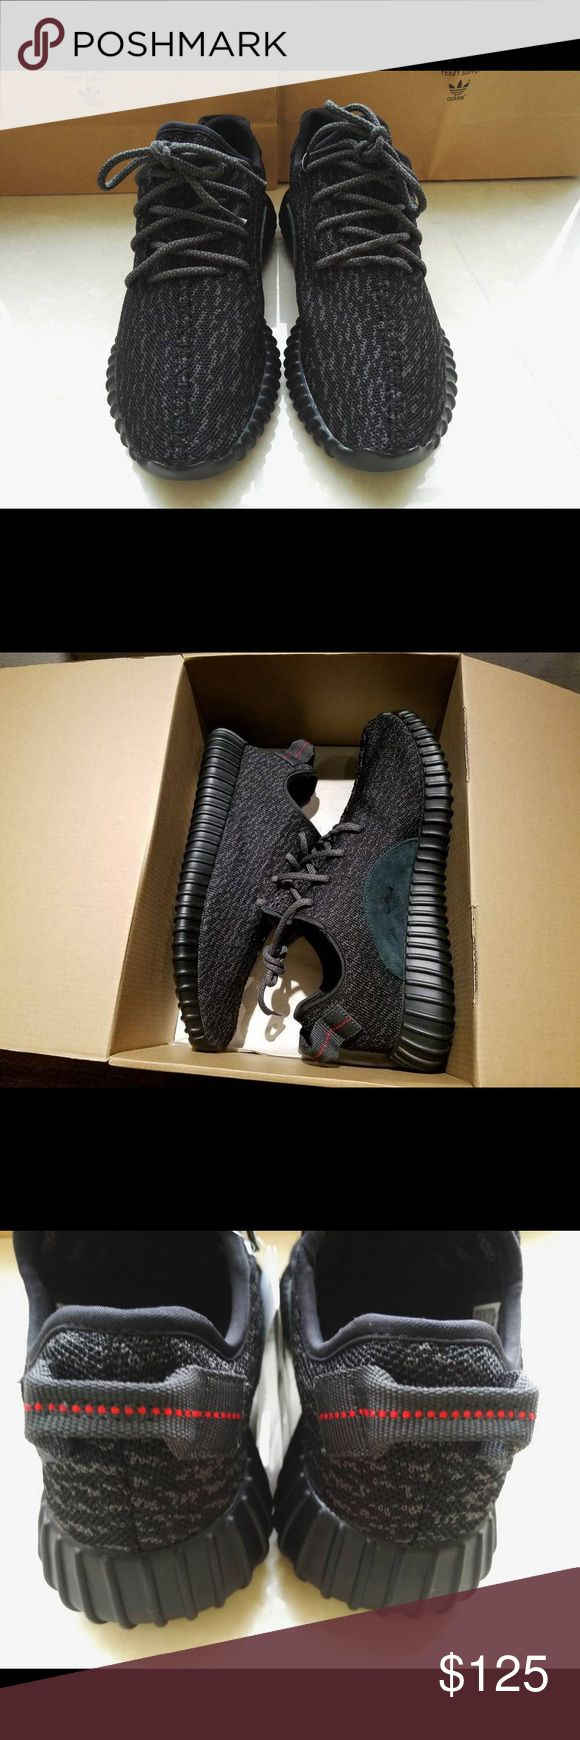 NEW Adidas Yeezy Boost 350 Pirate Black Men Up for sale brand New Adidas Yeezy Boost 350 Pirate Black Shoes are US men size 7, 10, 11, and 11.5 Real photos of the shoes With Box is $5 extra I am located at Villa Siena Apartments in Irvine, California, 92612 Text me at (31O)-625-1732, my name is Ari Price is firm $125 each Shoes are of best quality, very light weight, and well stitched, identical to original ***UNAUTHORIZED AUTHENTIC*** Additional Question, shoot me a text. I reply pretty…